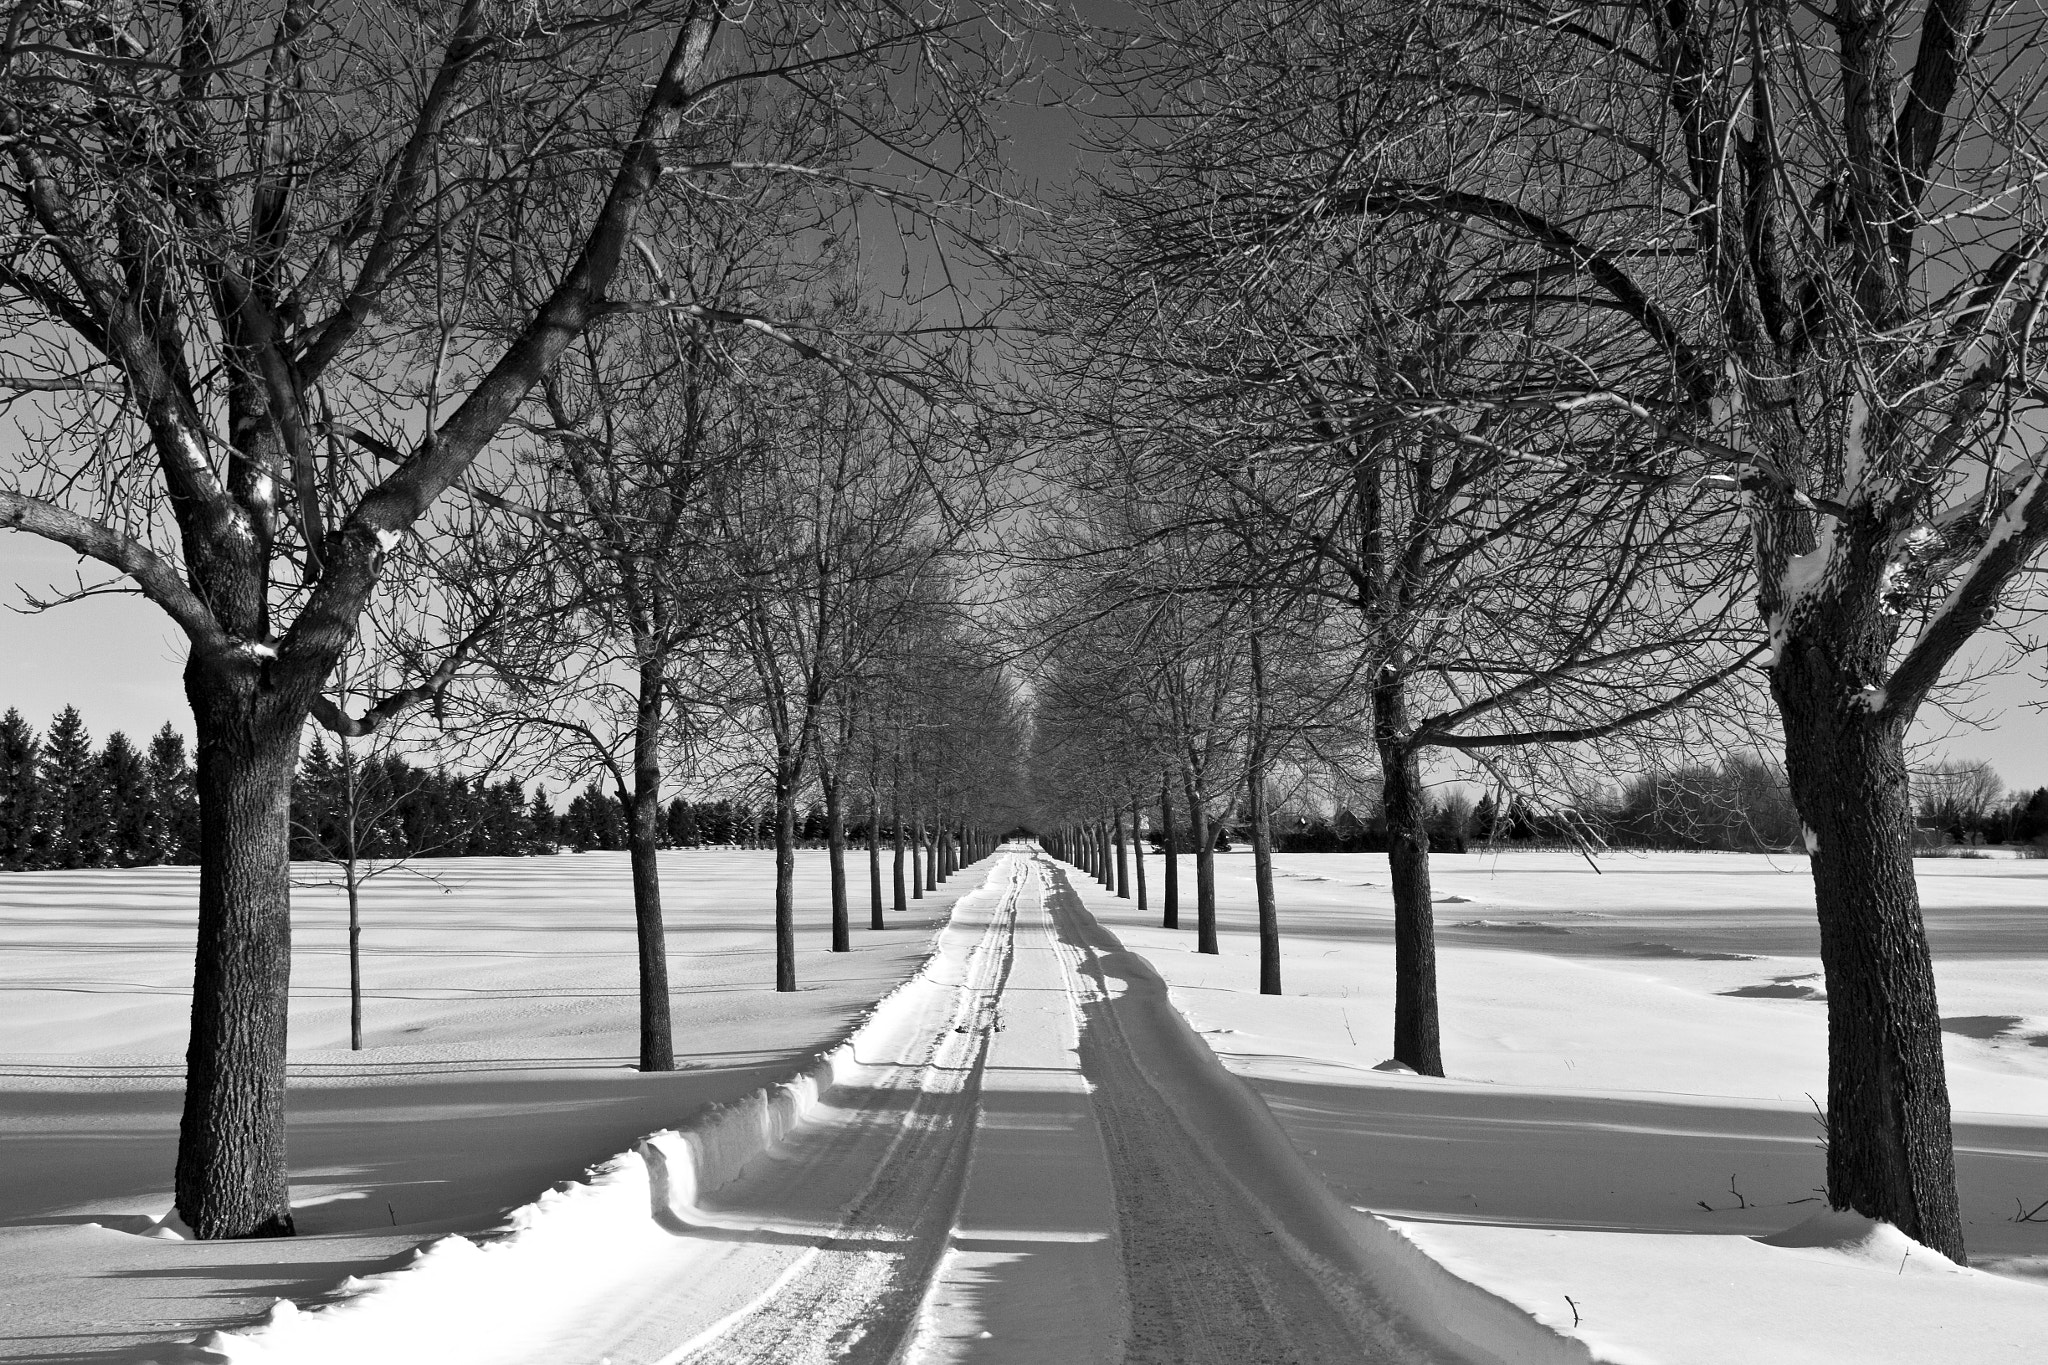 Photograph In the path of 2013 by Annie Macfhay on 500px